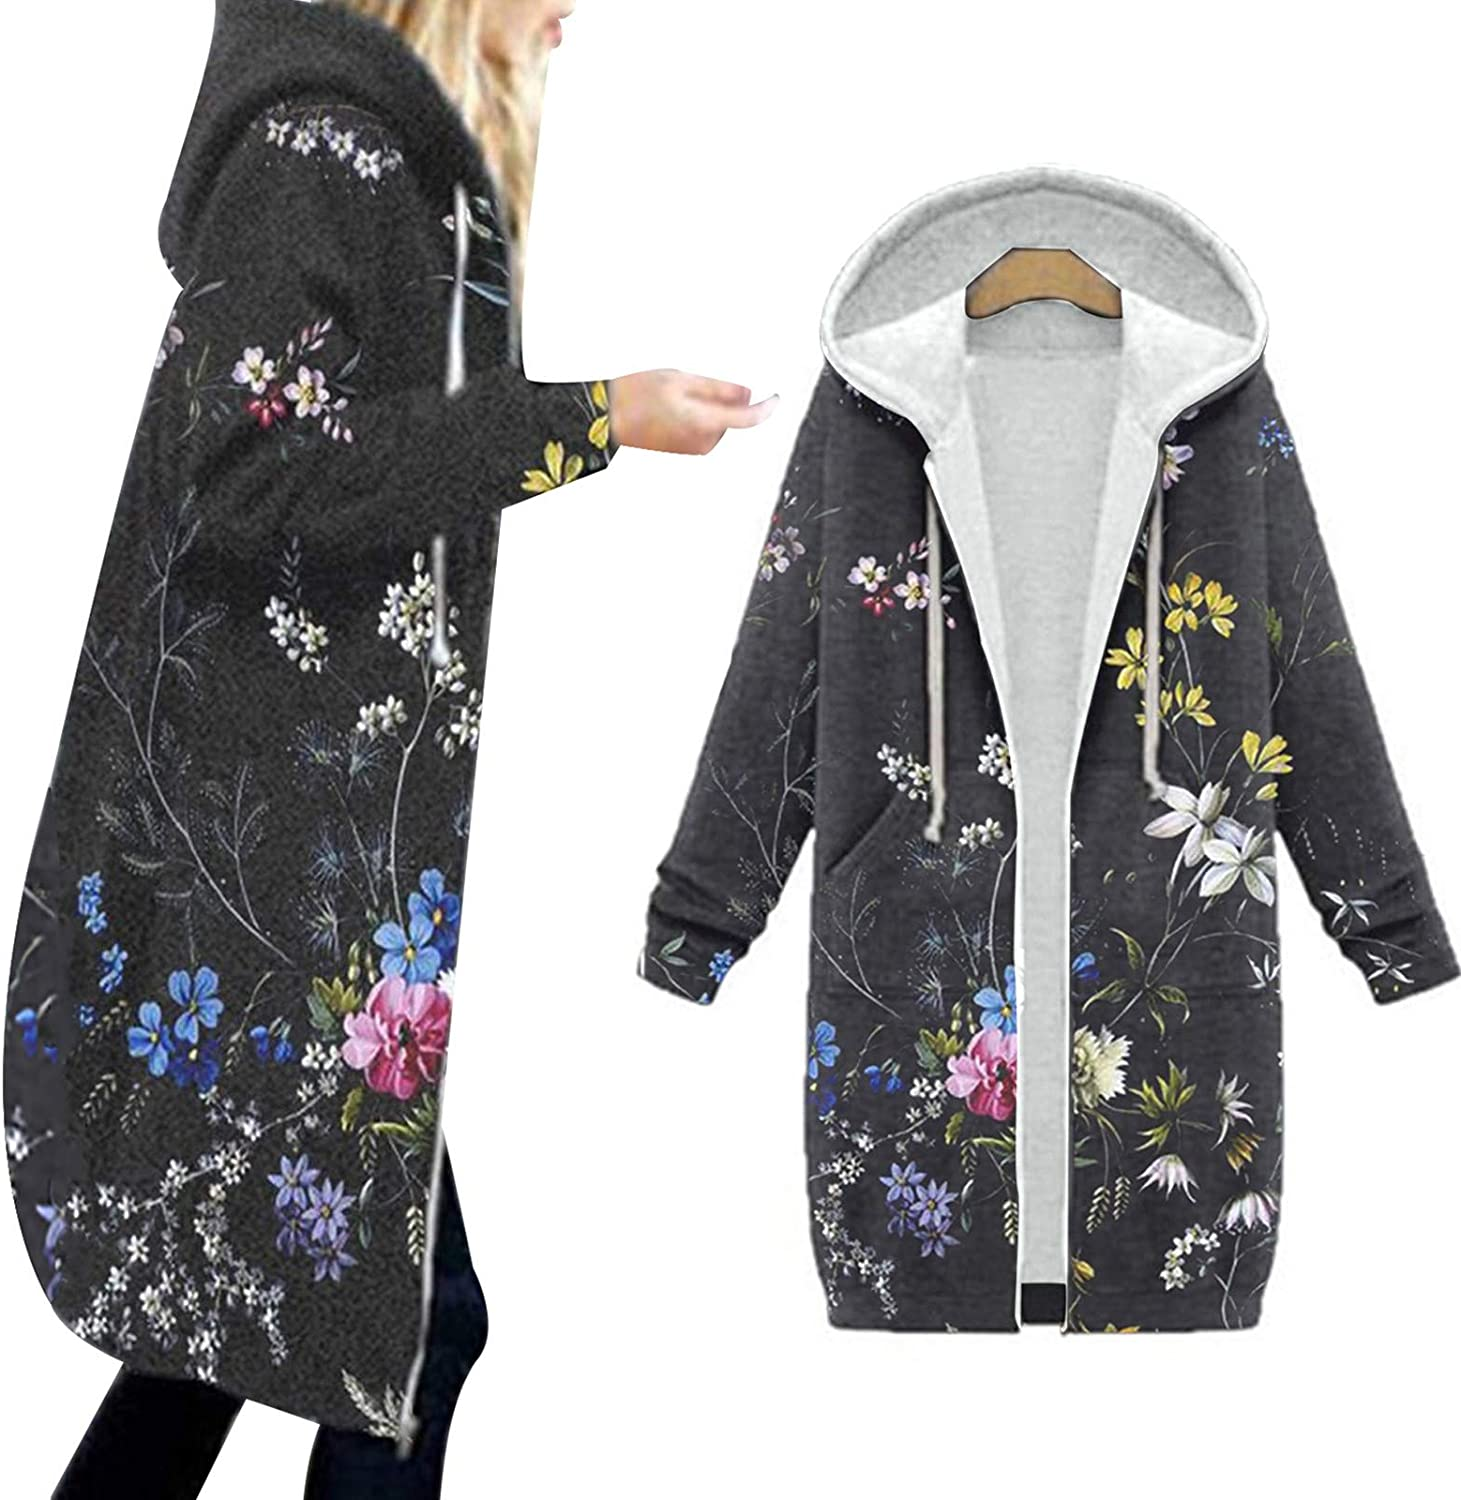 Women's Warm Long Overcoat Hooded Winter Quilted Cotton Parka Outwear Jackets Hoodie Floral Print Zipper Cardigan Trench